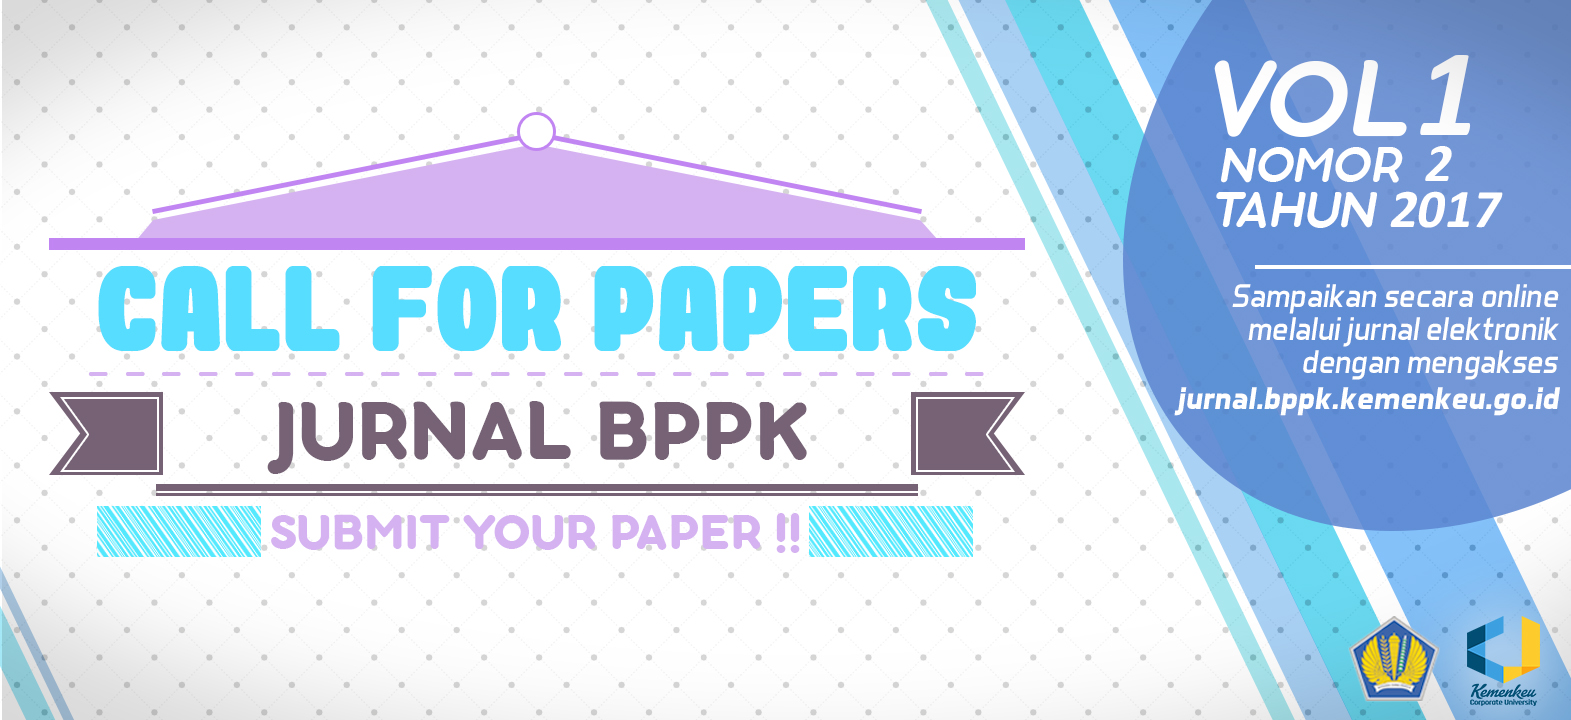 call for paper vol 2